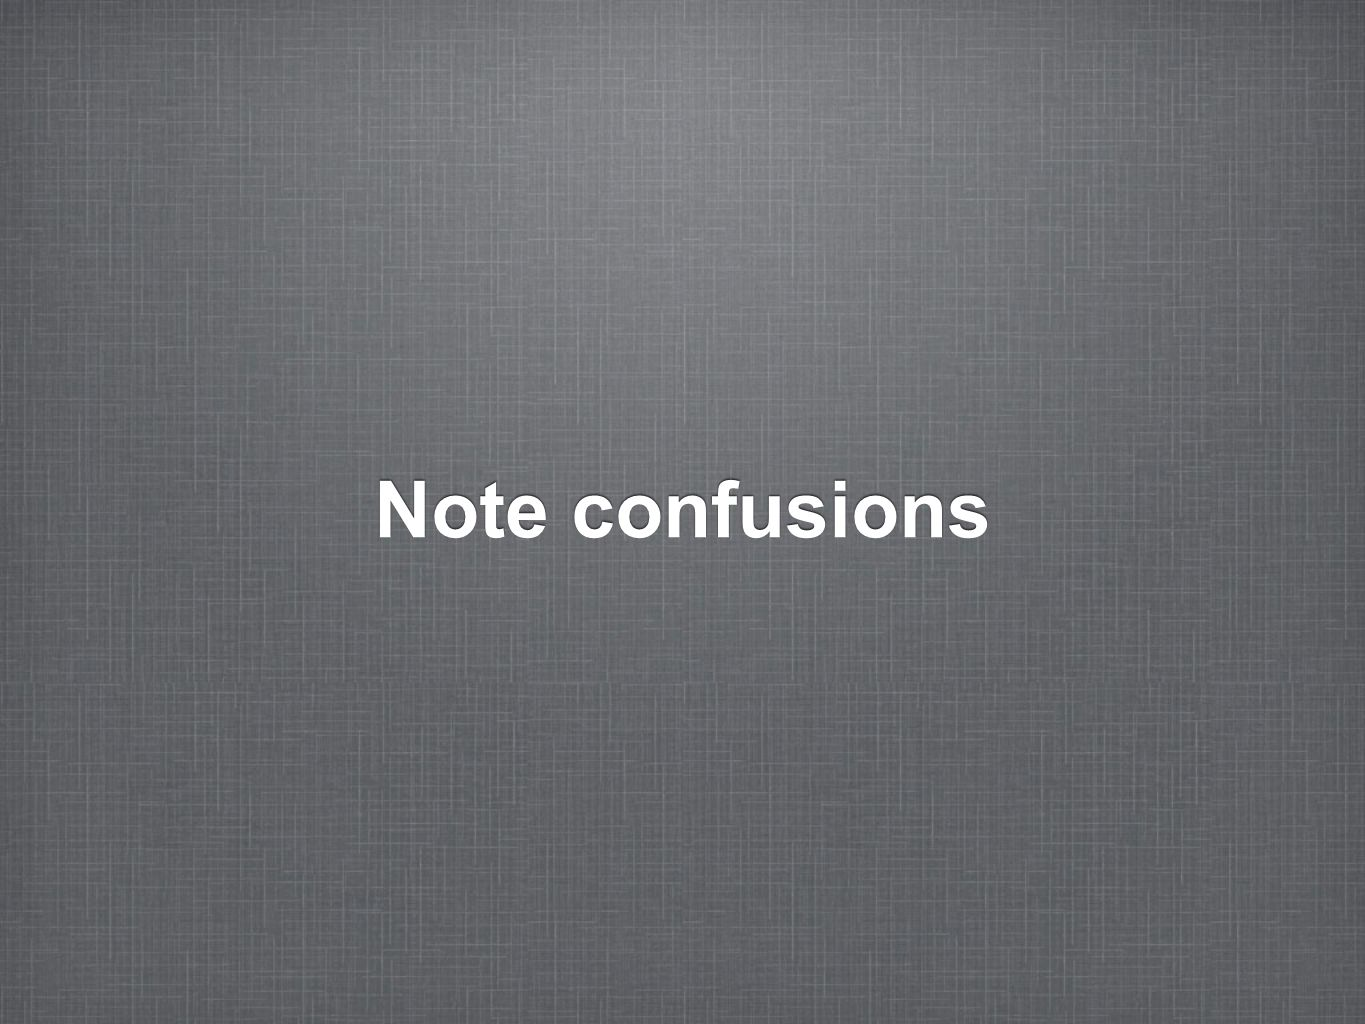 Note confusions